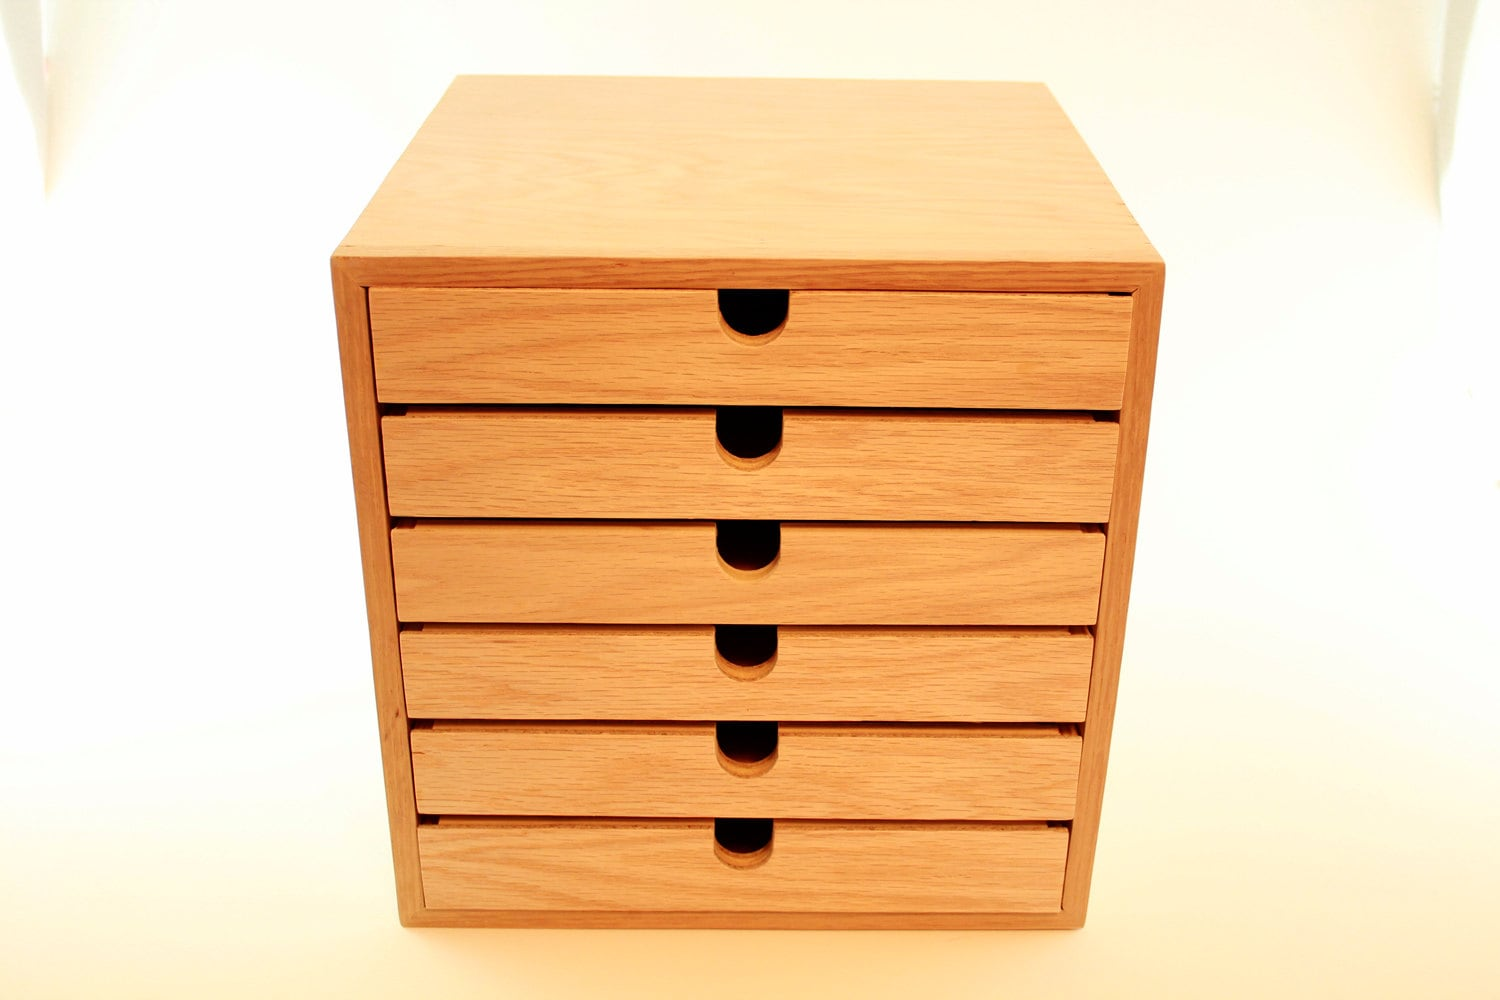 Chest of drawers handmade drawer wood knitting storage